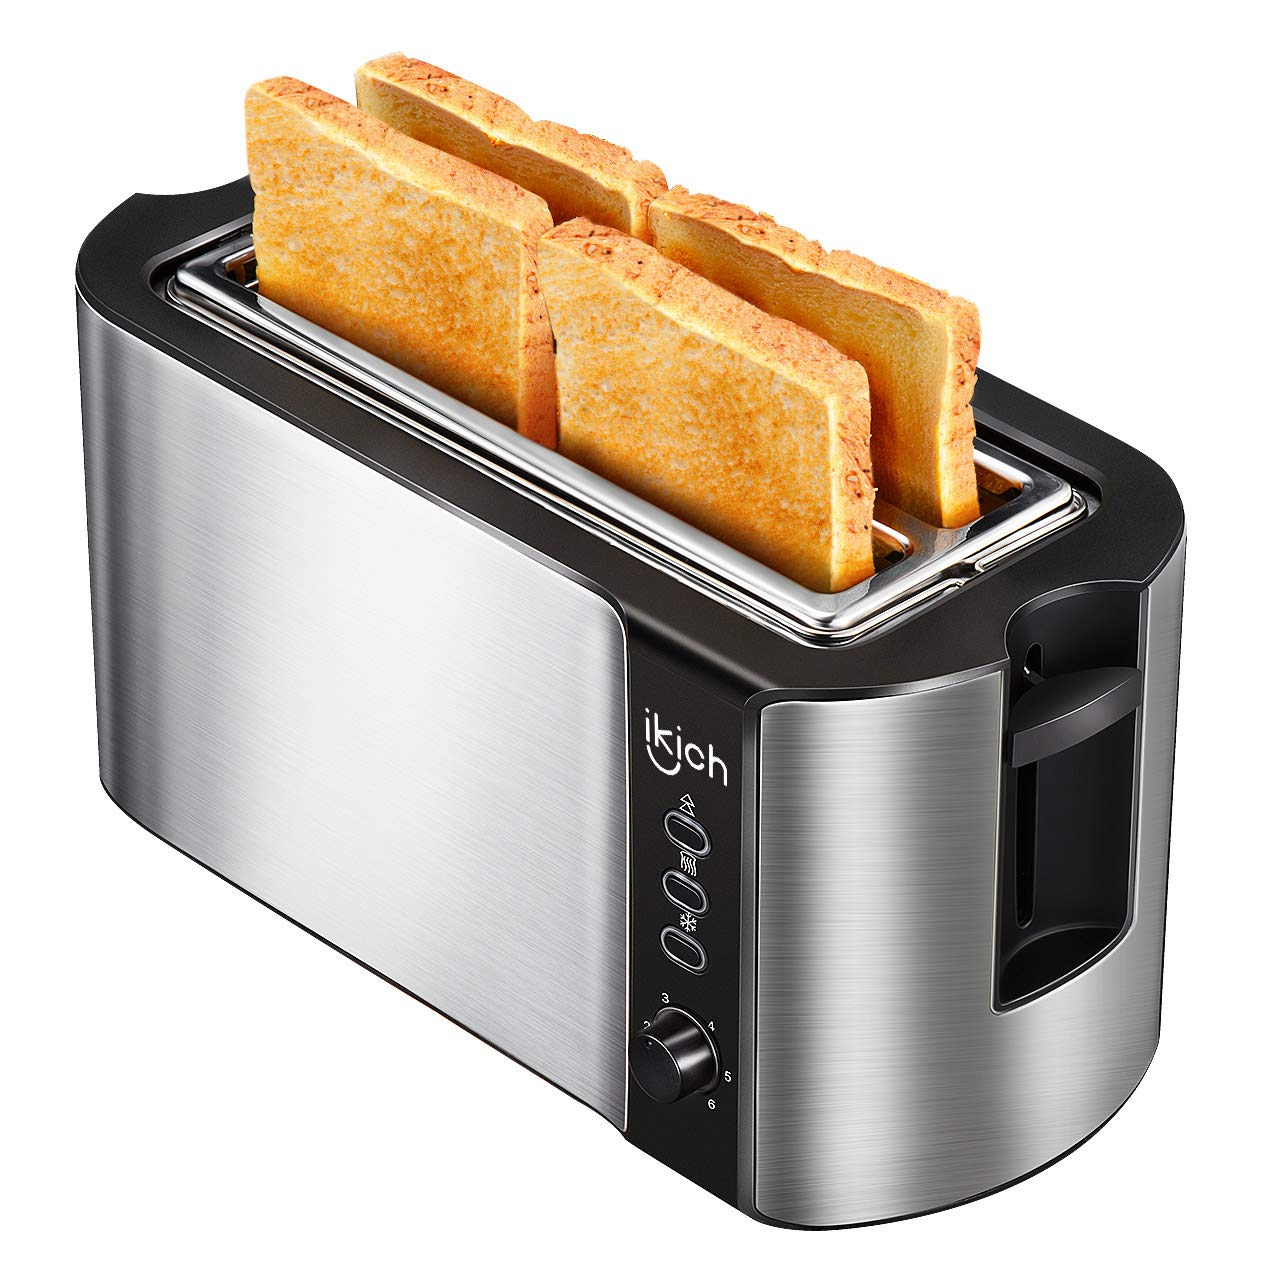 IKICH 4 Slice Long Slot Toaster Best Rated Prime, Stainless Steel Bread Toasters(Warming Rack, 6 Bread Shade Settings, Defrost/Reheat/Cancel Function, Extra Wide Slots, Removable Crumb Tray, 1500W)